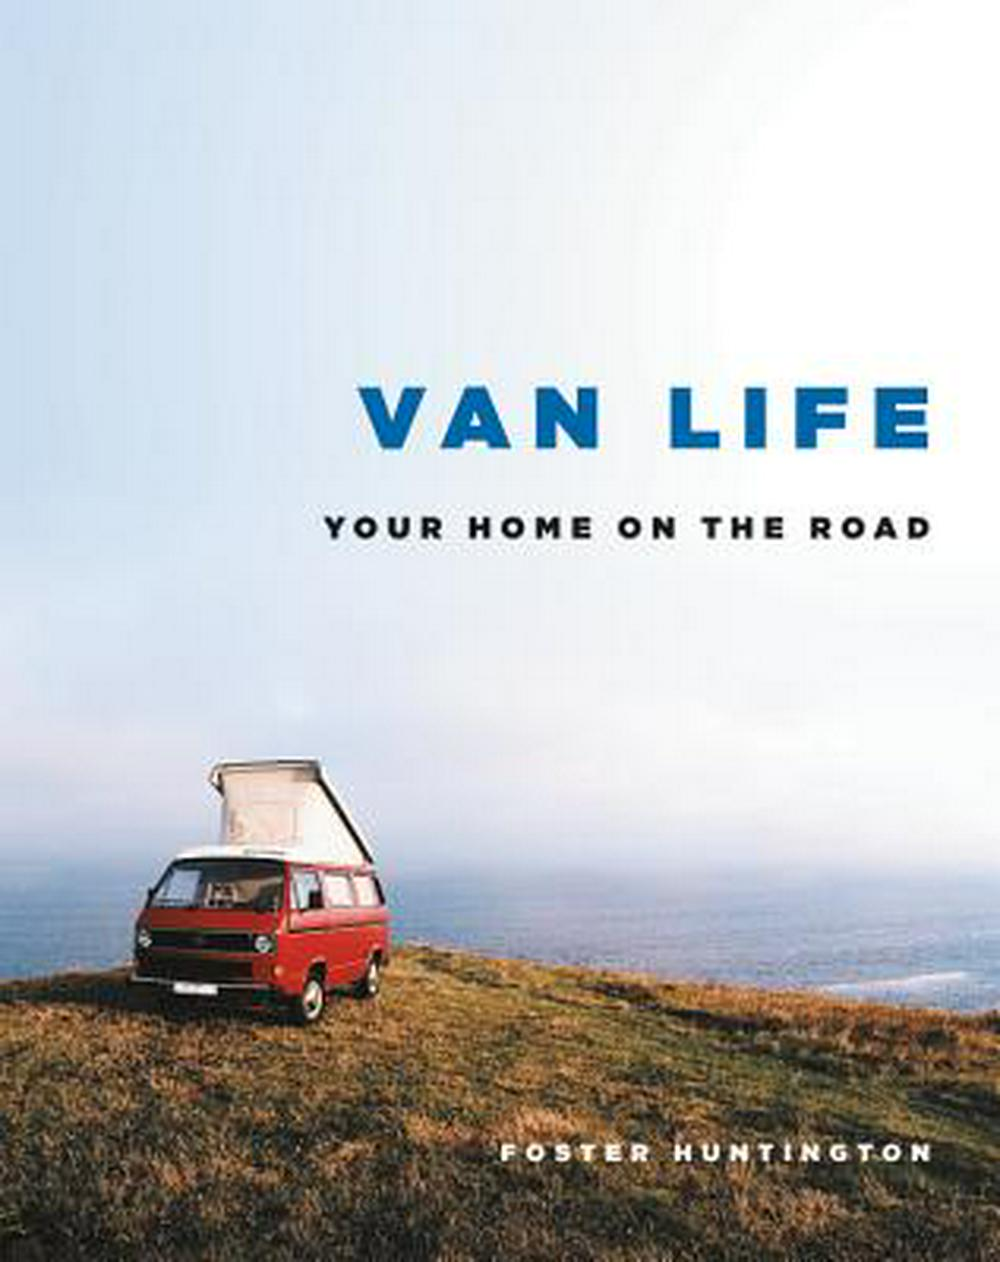 Van Life: Inspiration for Your Home on the Road by Foster Huntington, ISBN: 9780316556446